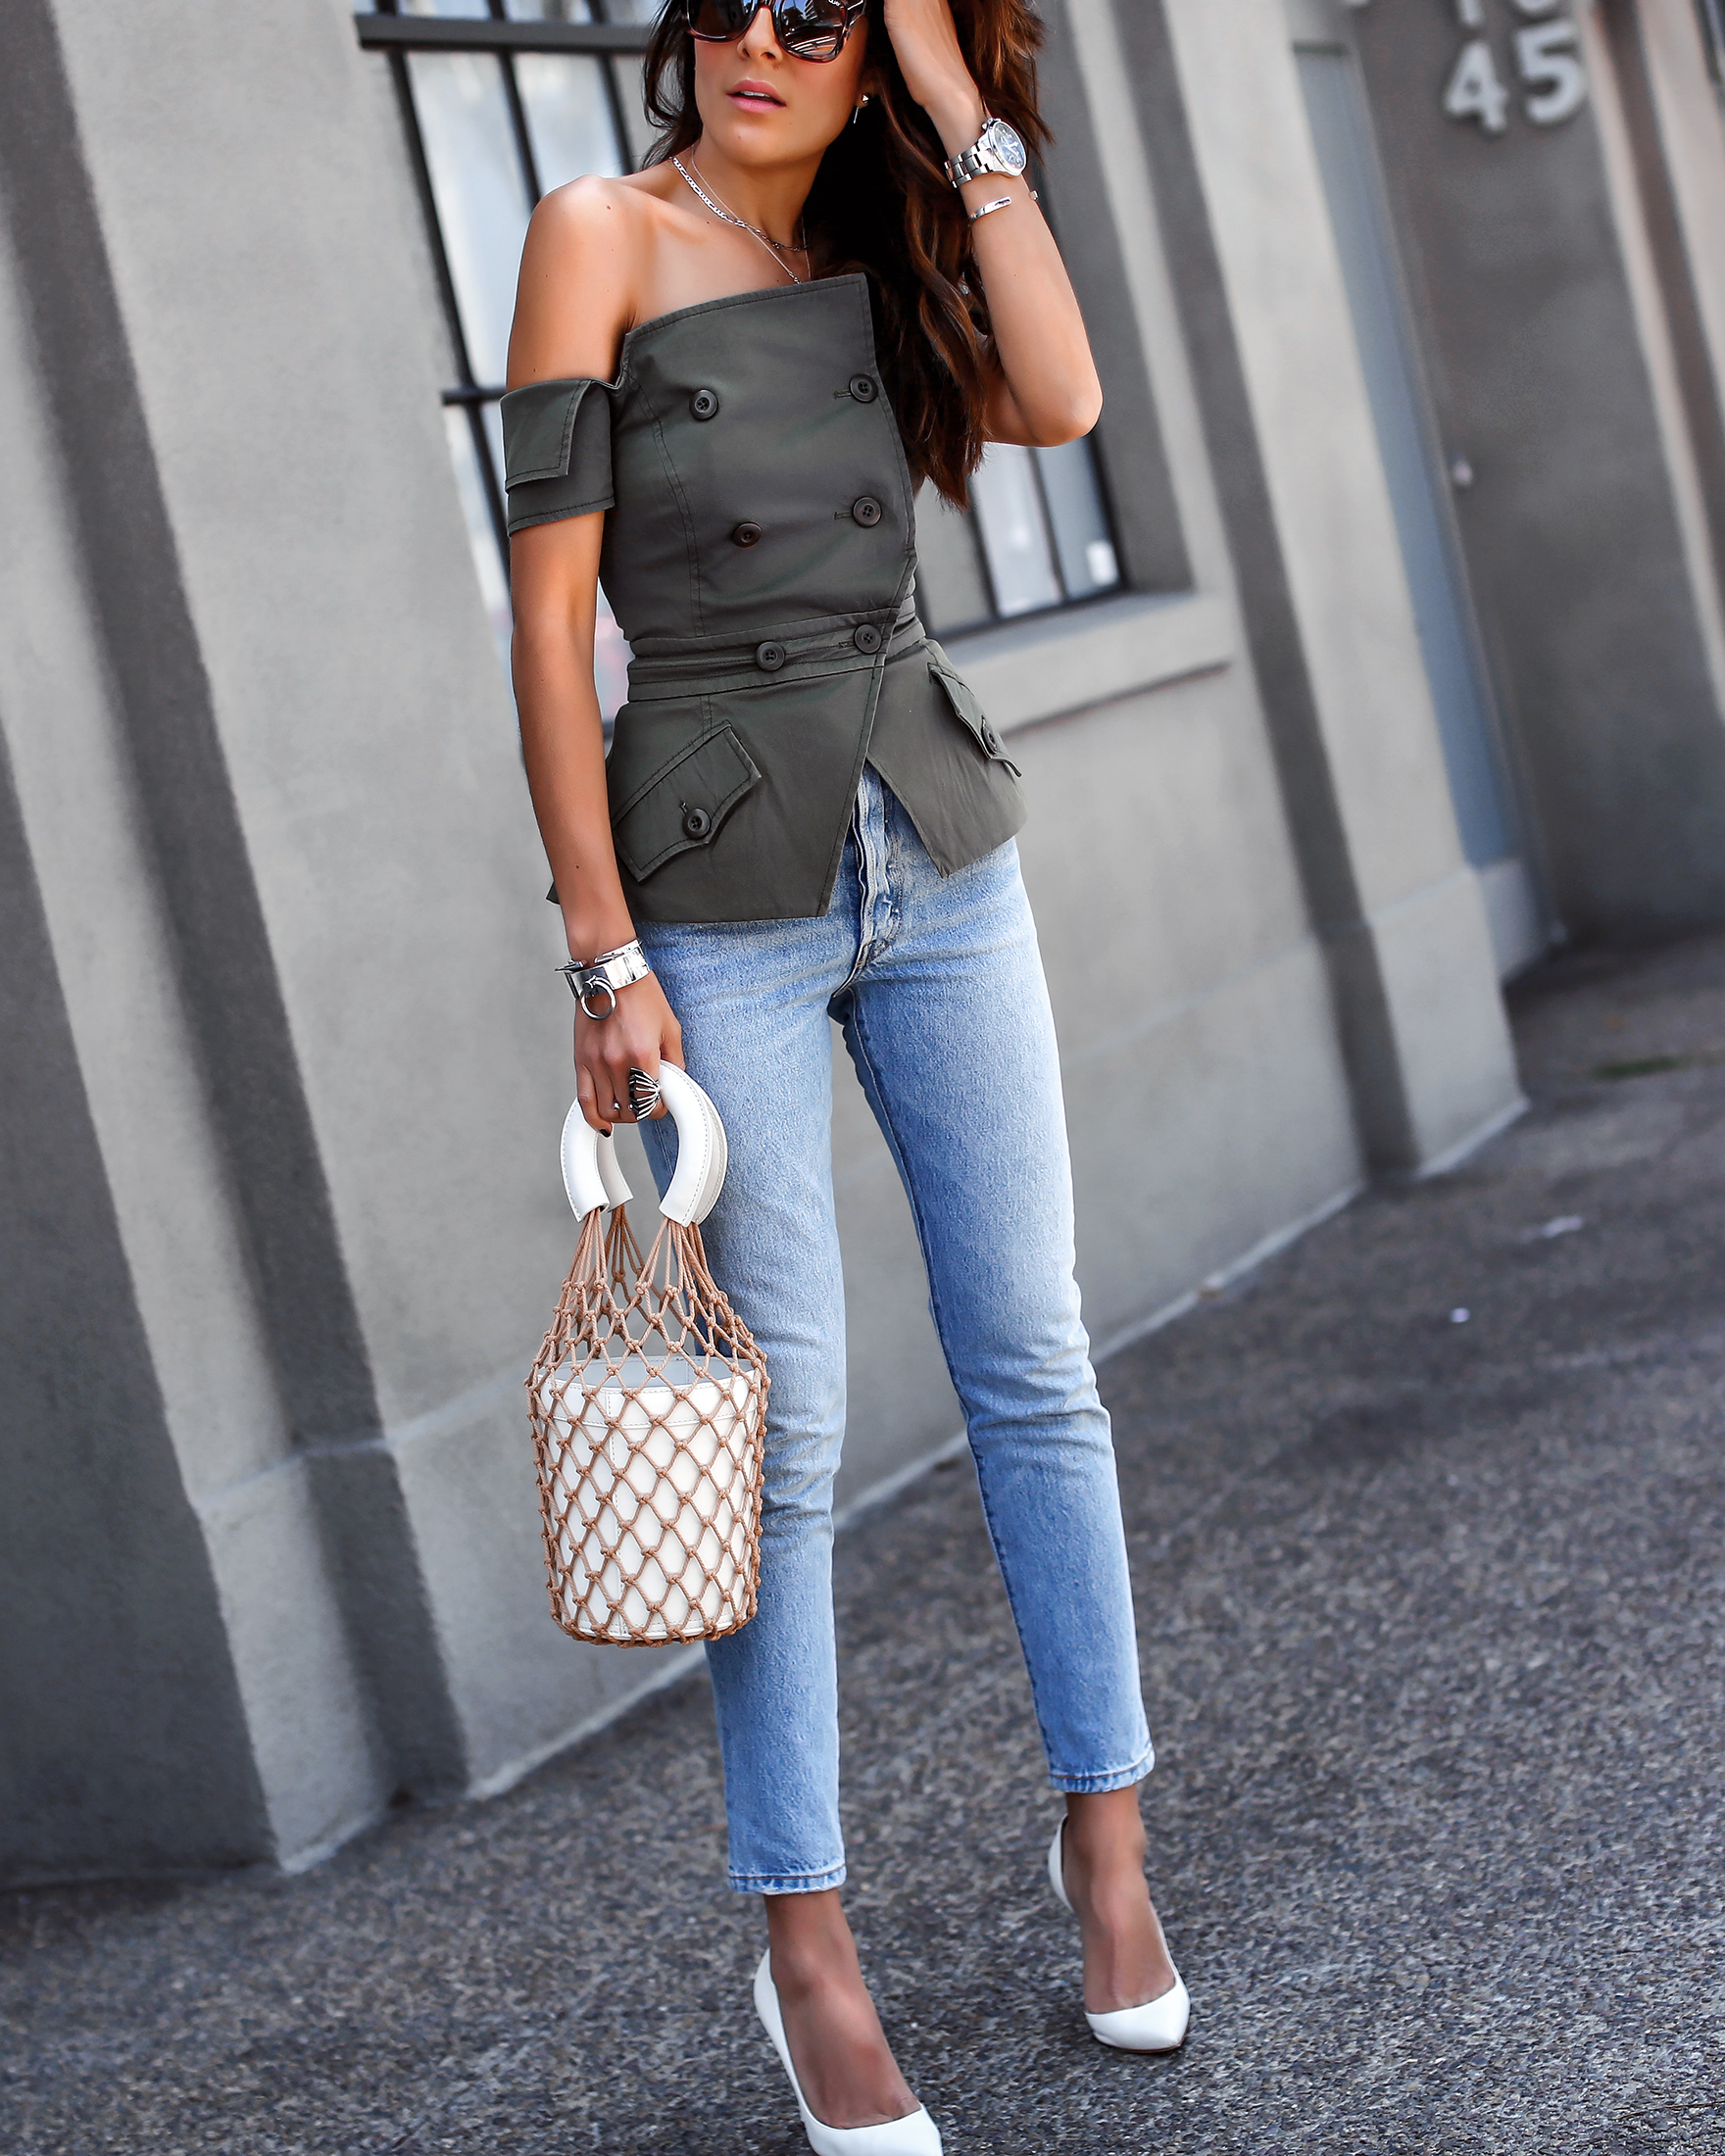 Marissa Webb Vest Levis Jeans Staud Bucket Bag White Shoes Spring Fashion Must Haves.jpg